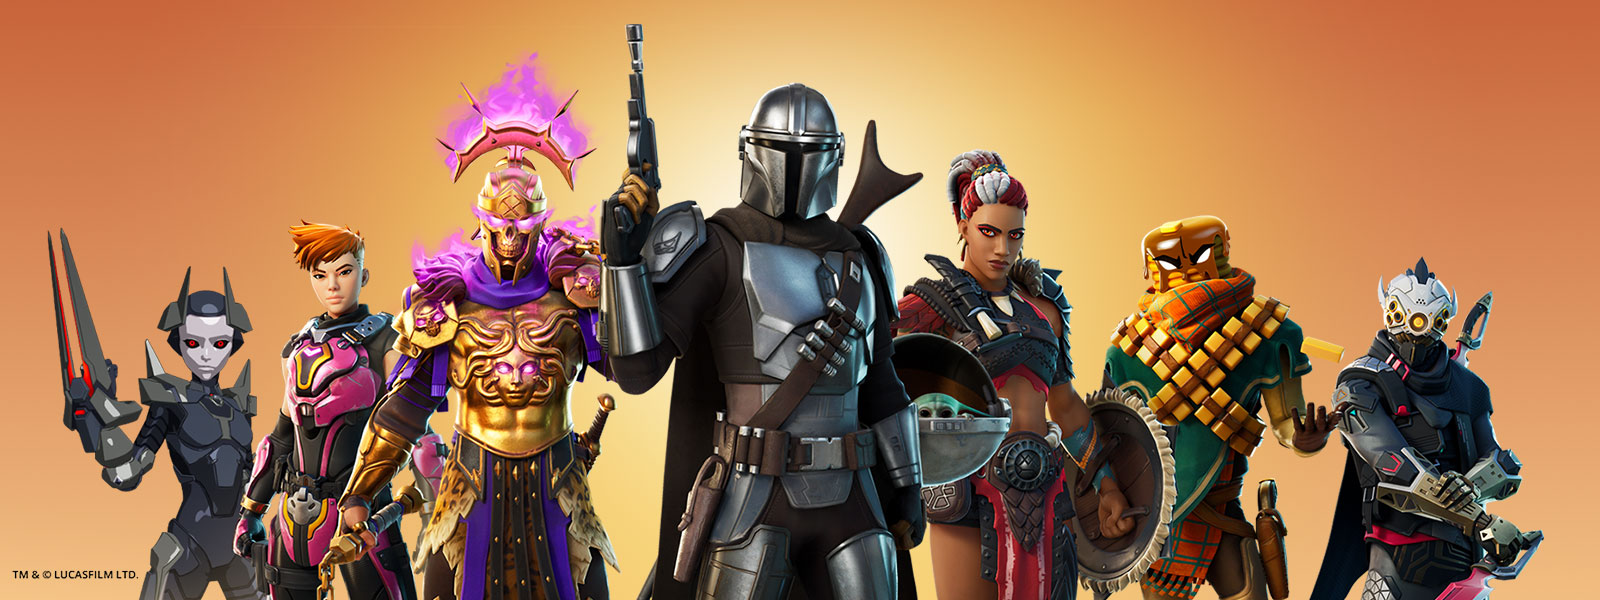 A line of characters led by The Mandalorian stand ready for battle.